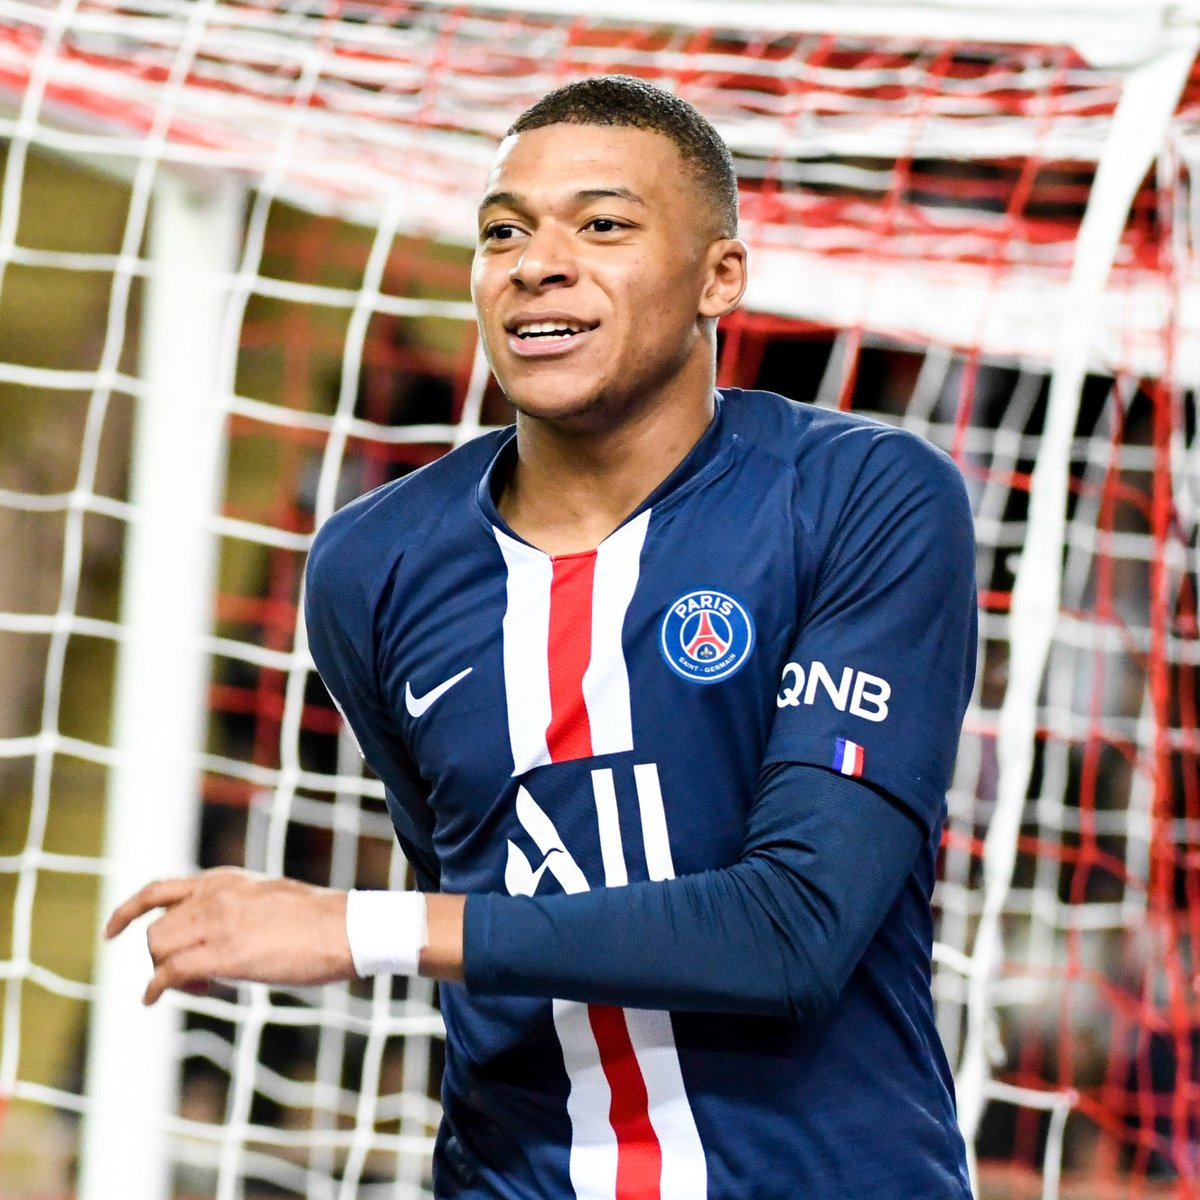 🔴🔵 Kylian Mbappé in all competitions for club & country this season = 🔥🔥🔥  ⚽2⃣3⃣ 👕2⃣1⃣  #UCL https://t.co/zXlxKNbLTd